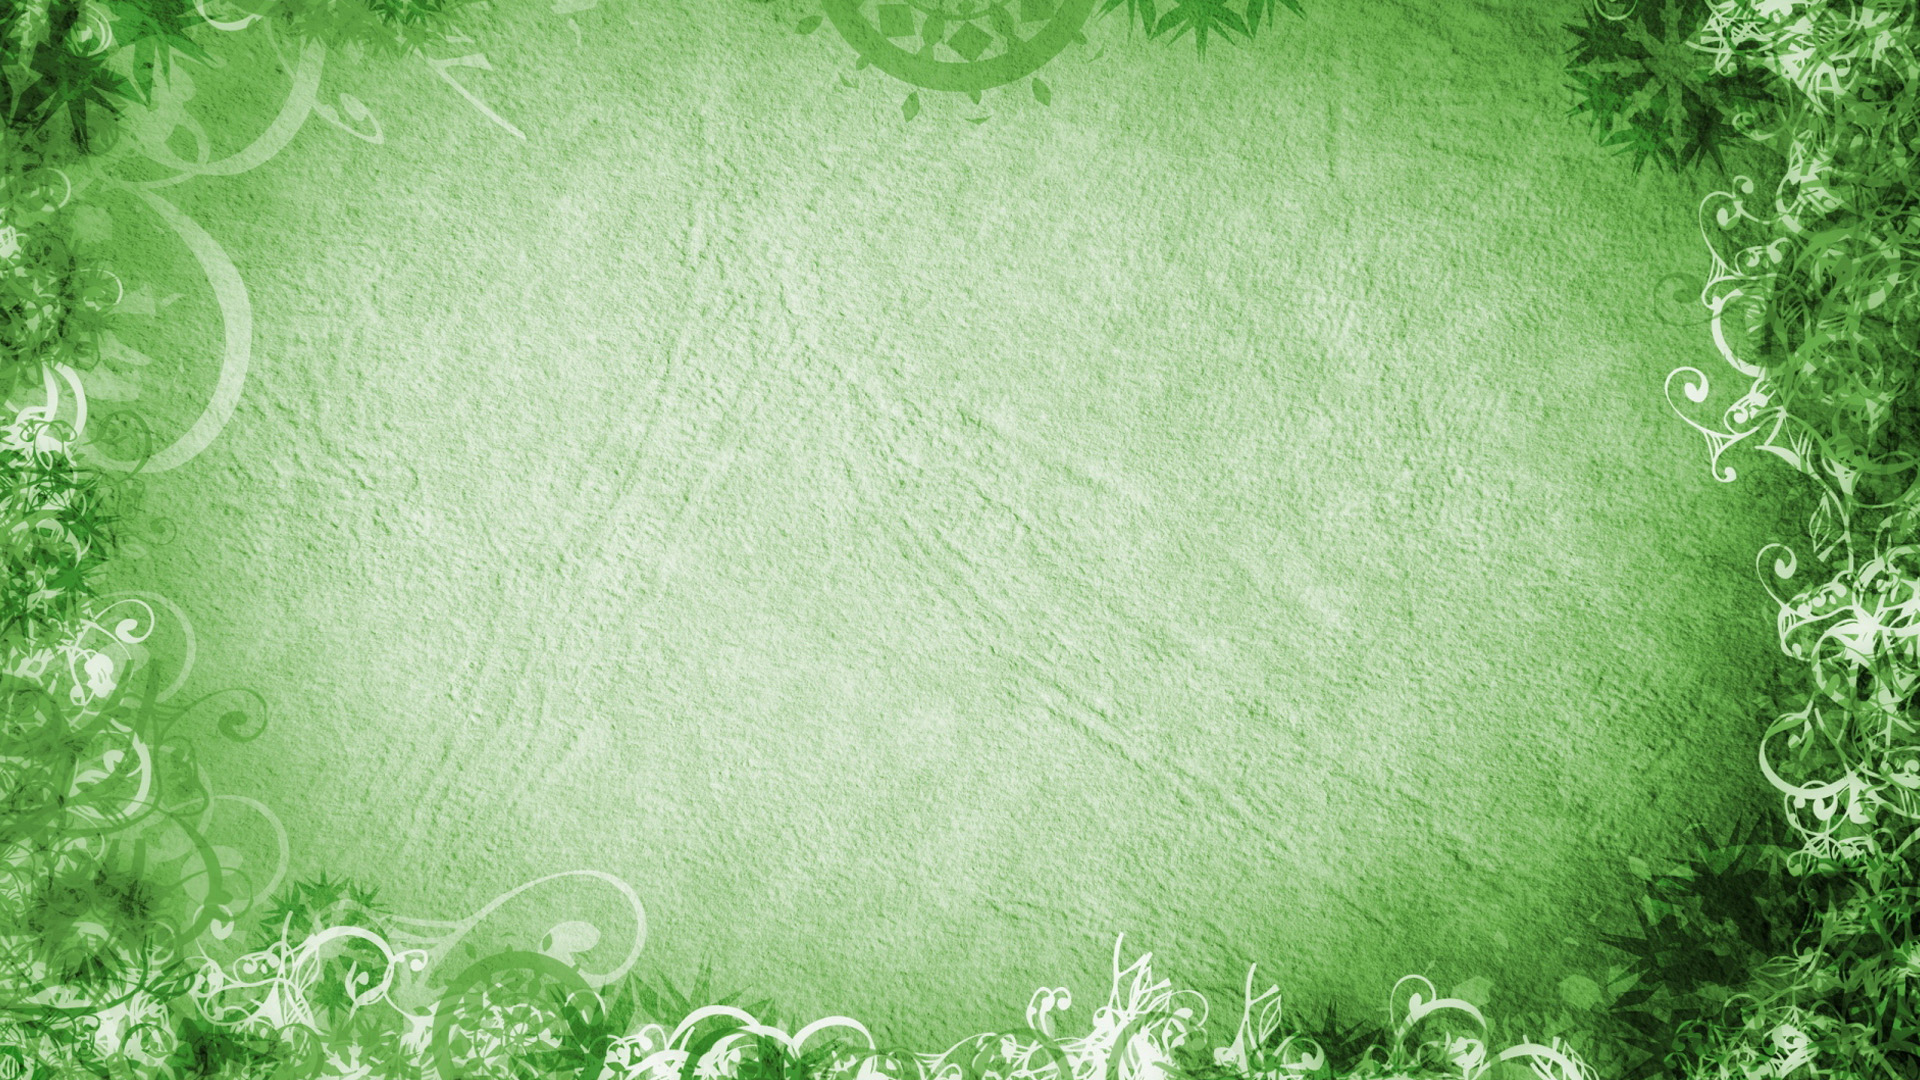 Wallpaper Vintage Green